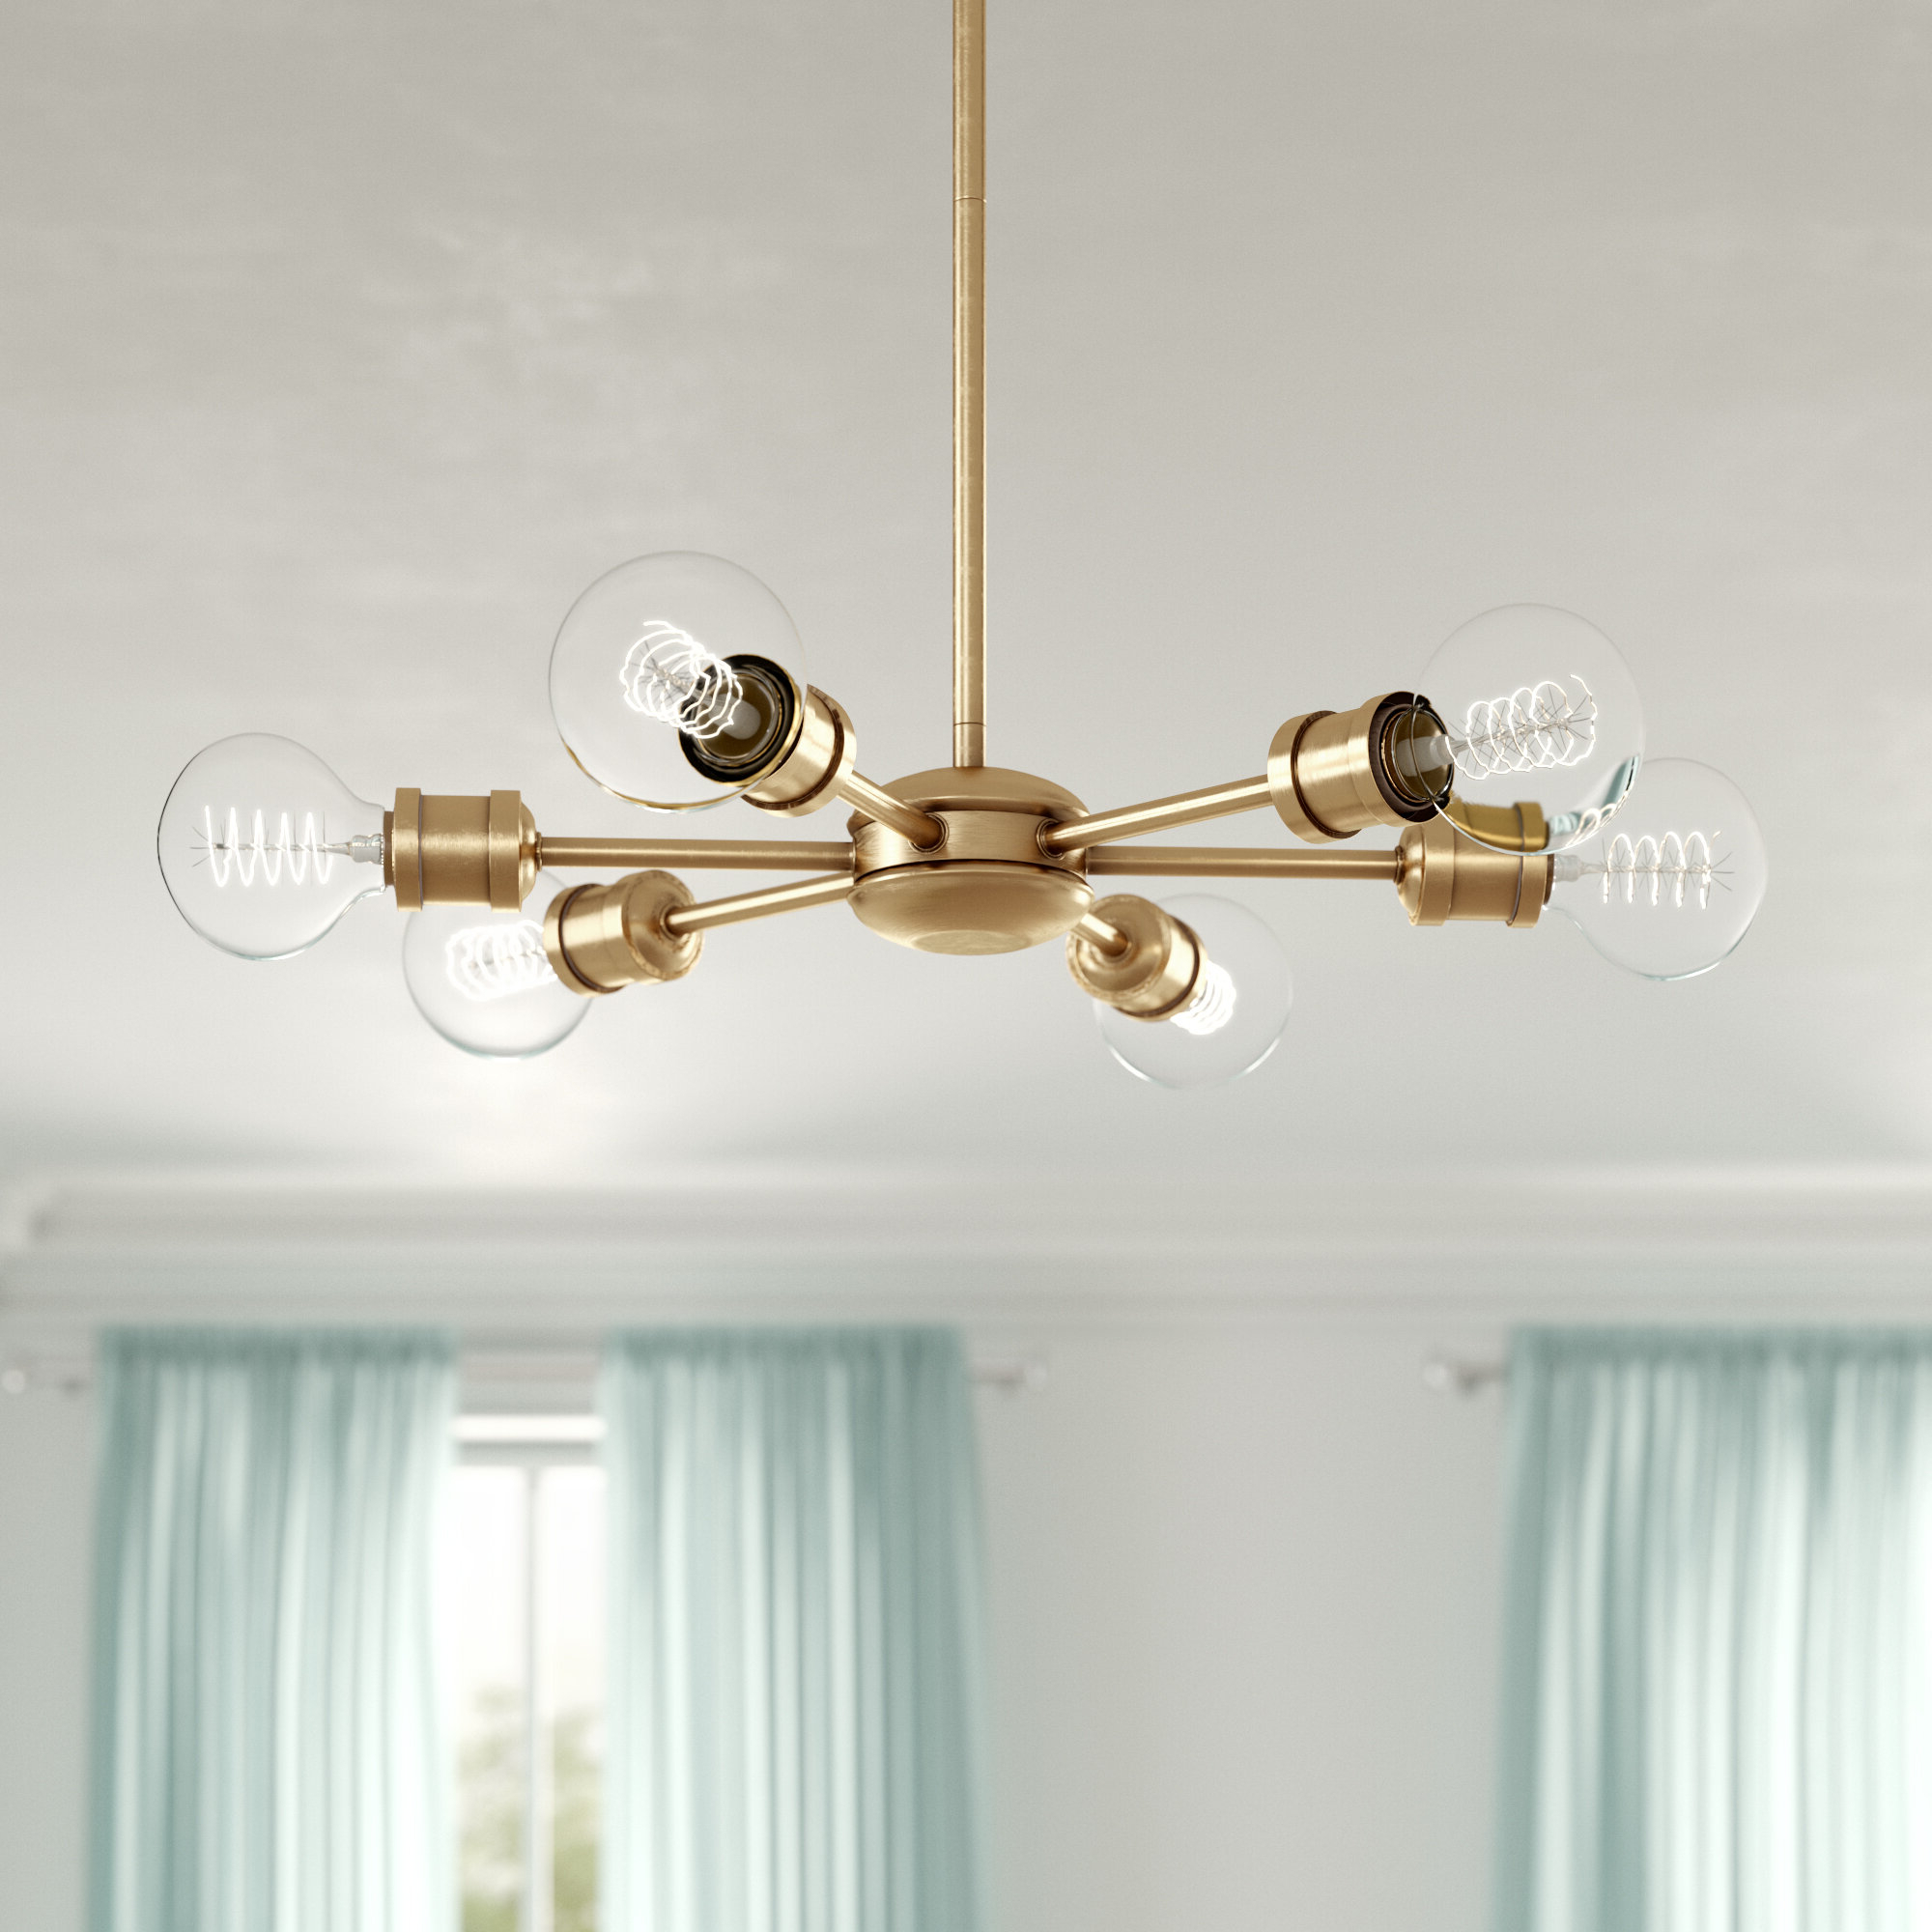 Best and Newest Everett 10-Light Sputnik Chandeliers with Bautista 6-Light Sputnik Chandelier